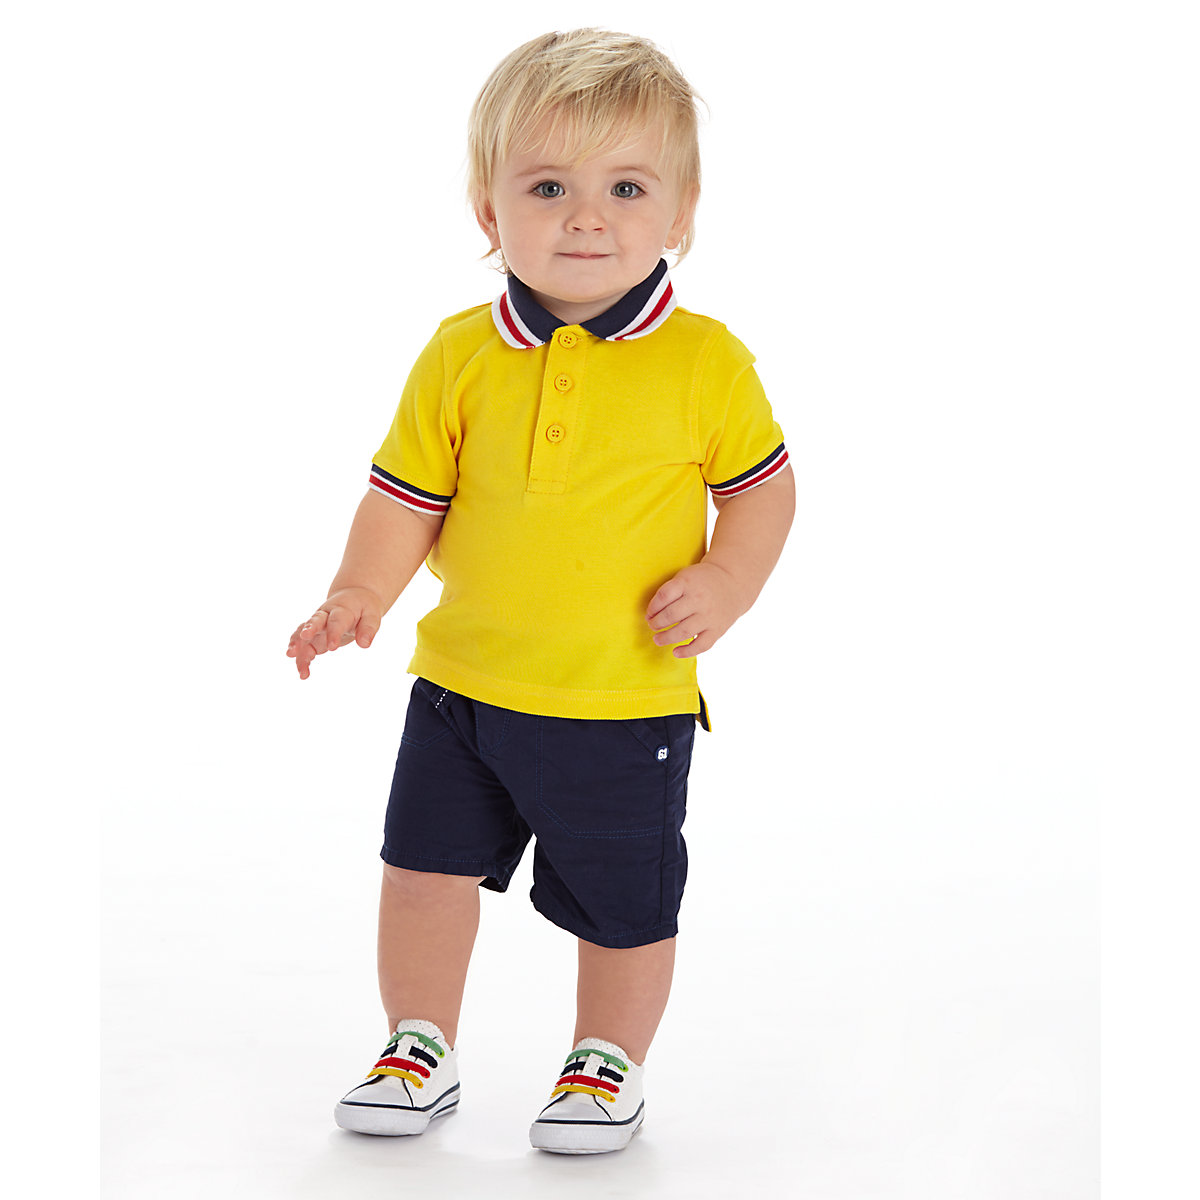 Choose from stylish baby clothes for boys and girls to nightwear, smart outfits and children's clothes suitable up to 8 years including swimwear. We also have a great choice of boys and girls footwear and the popular My K clothing range from Myleene Klass means we have the perfect clothing .